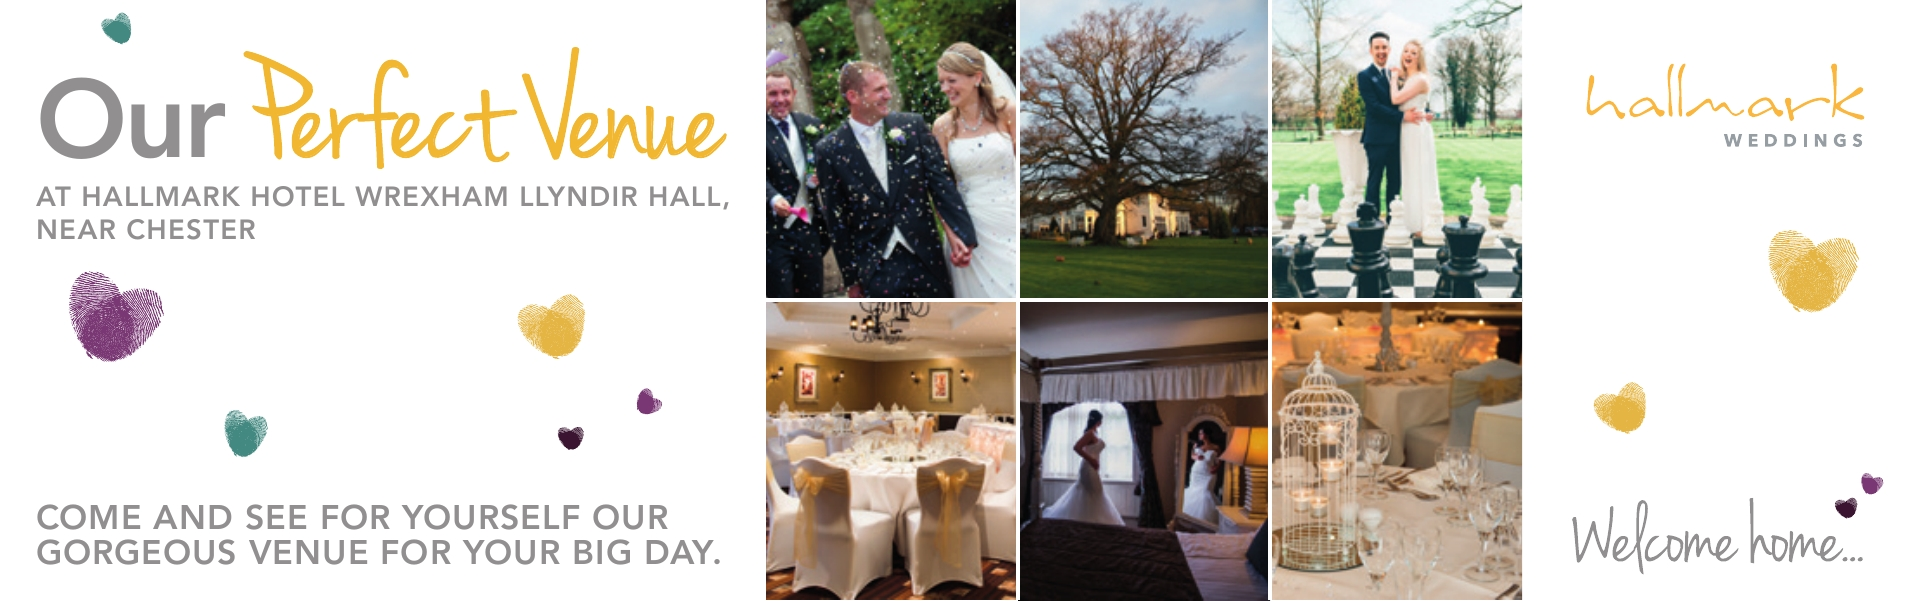 Hallmark Hotel Wrexham Llyndir Hall, near Chester Weddings